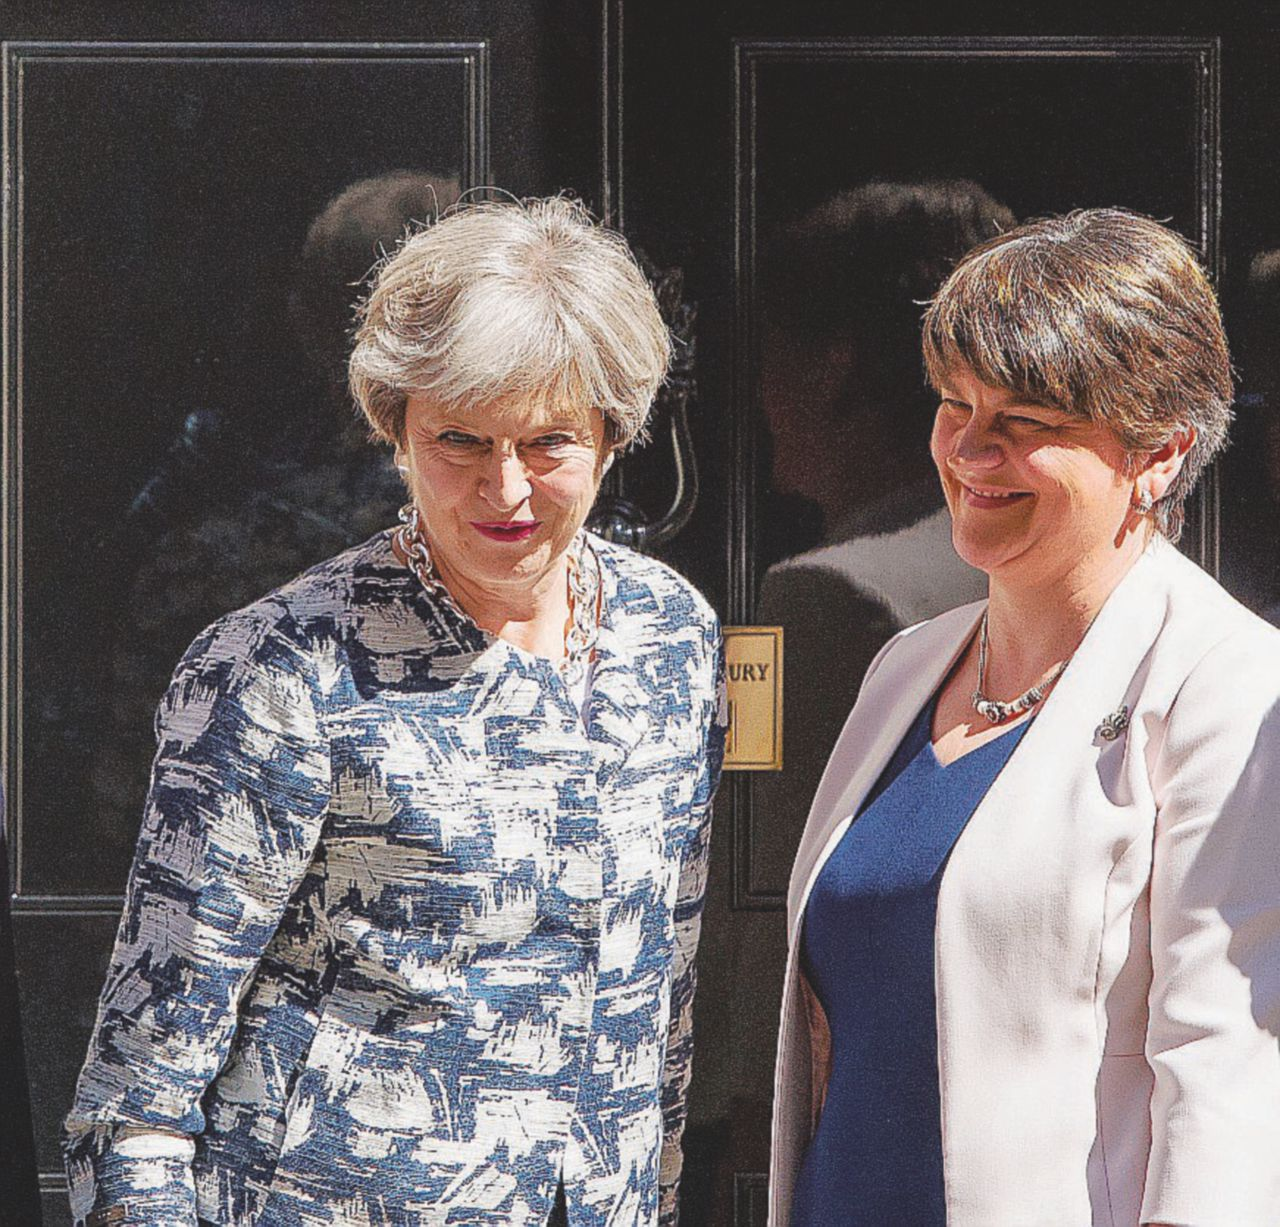 May e l'accordo-capestro per un governicchio inglese